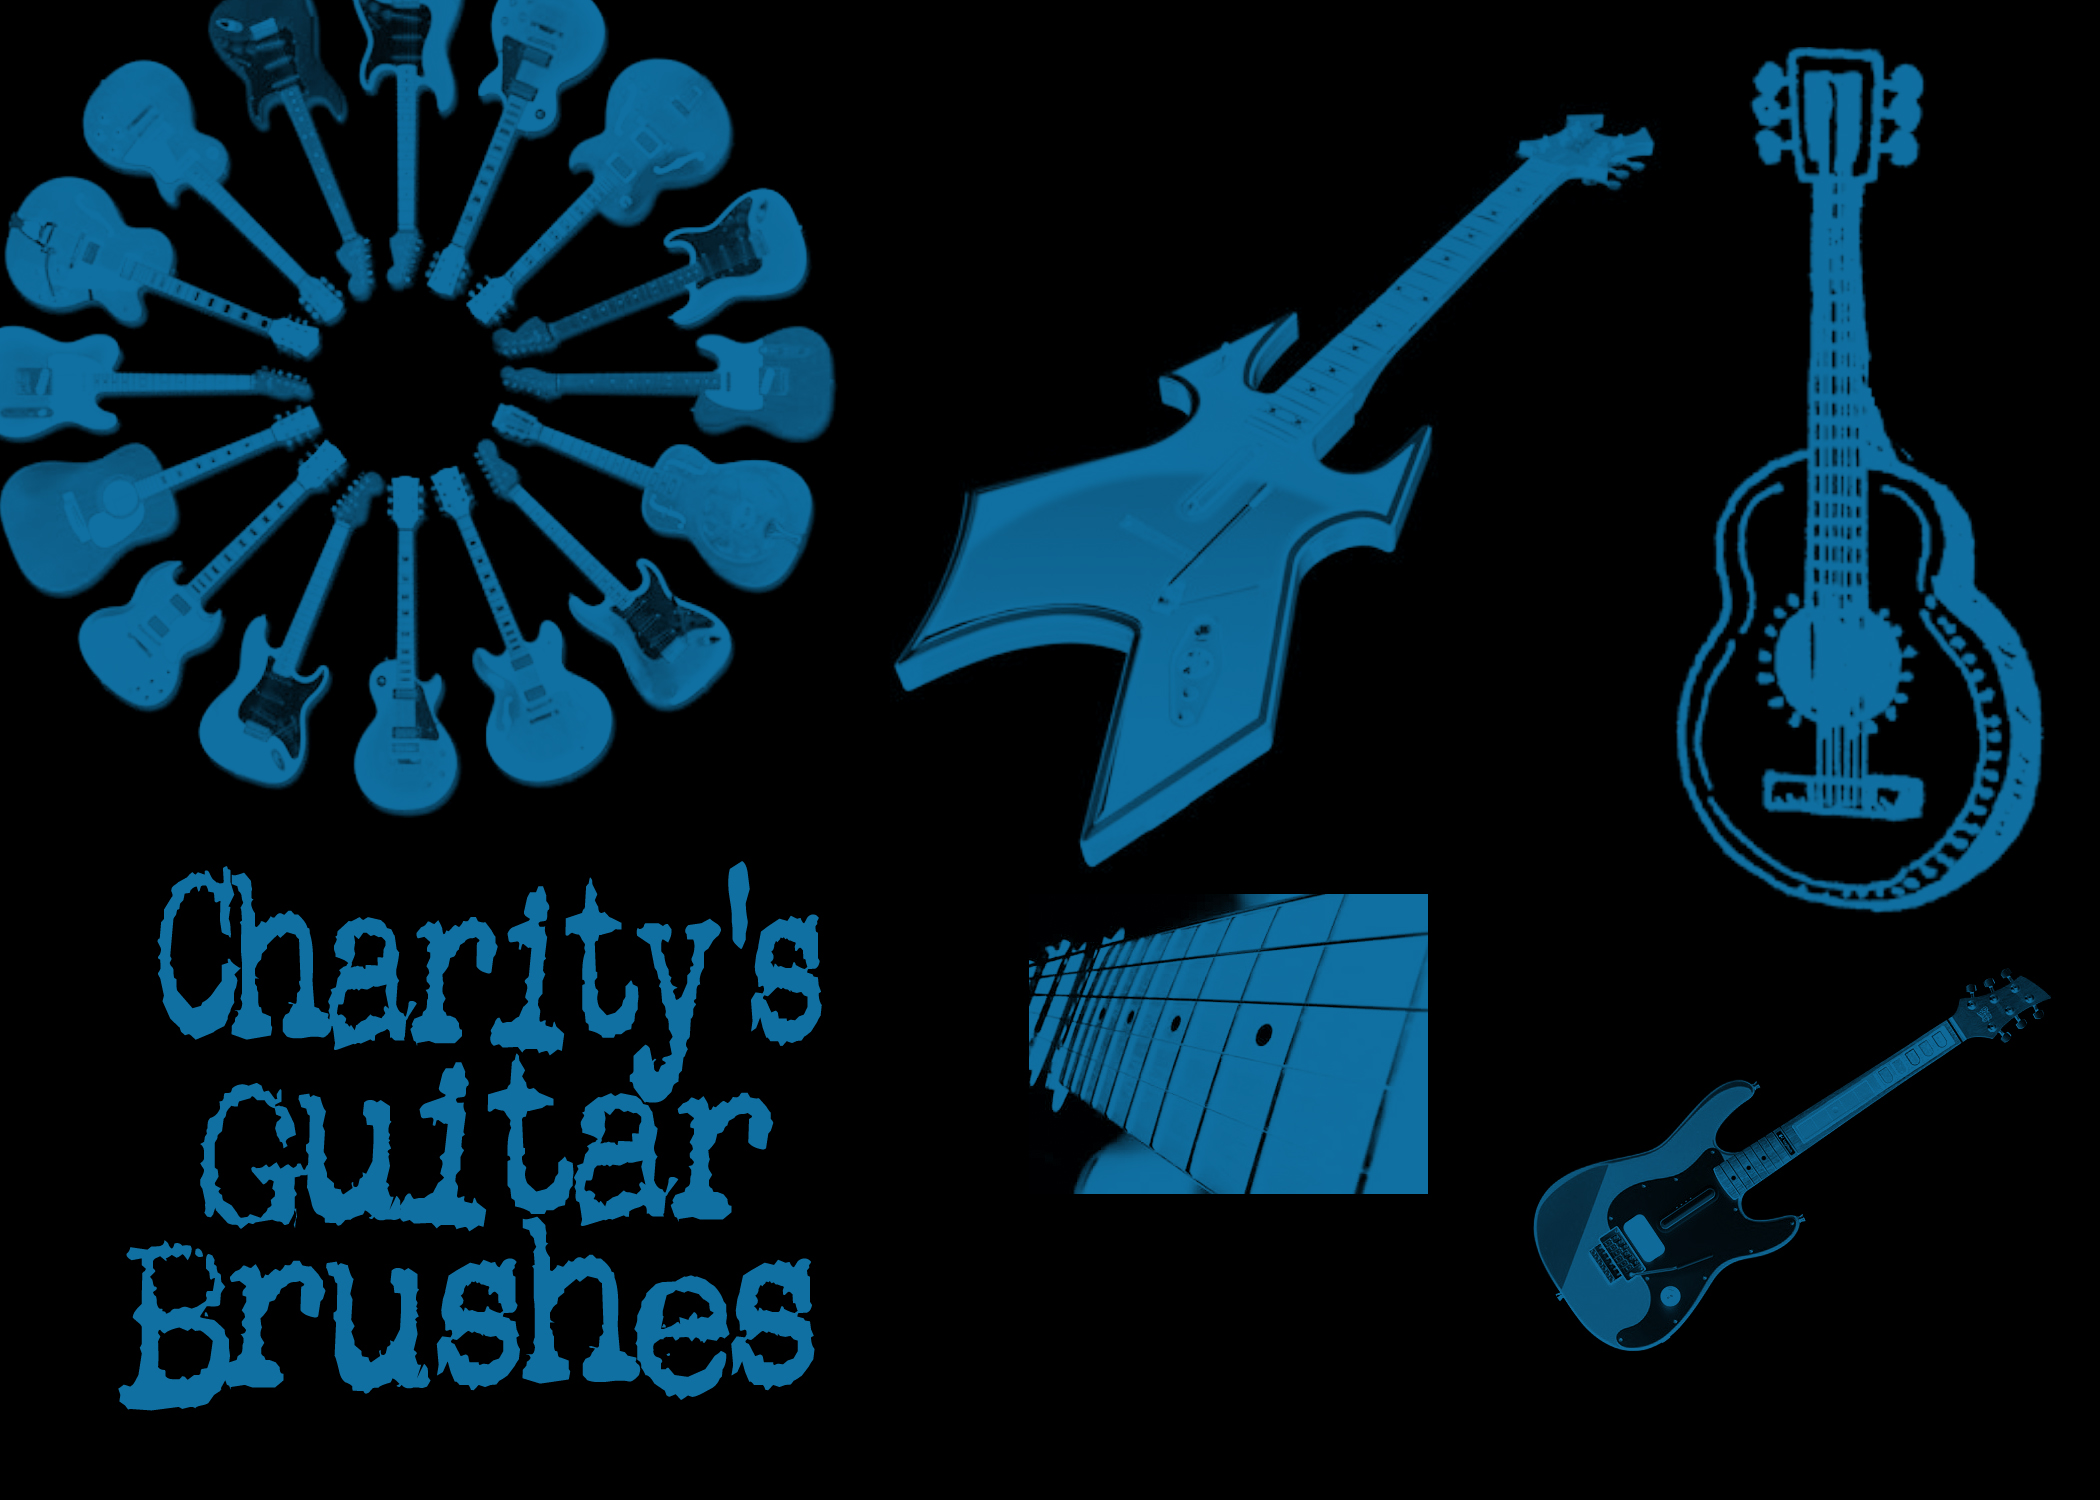 Charity's Guitar Brushes